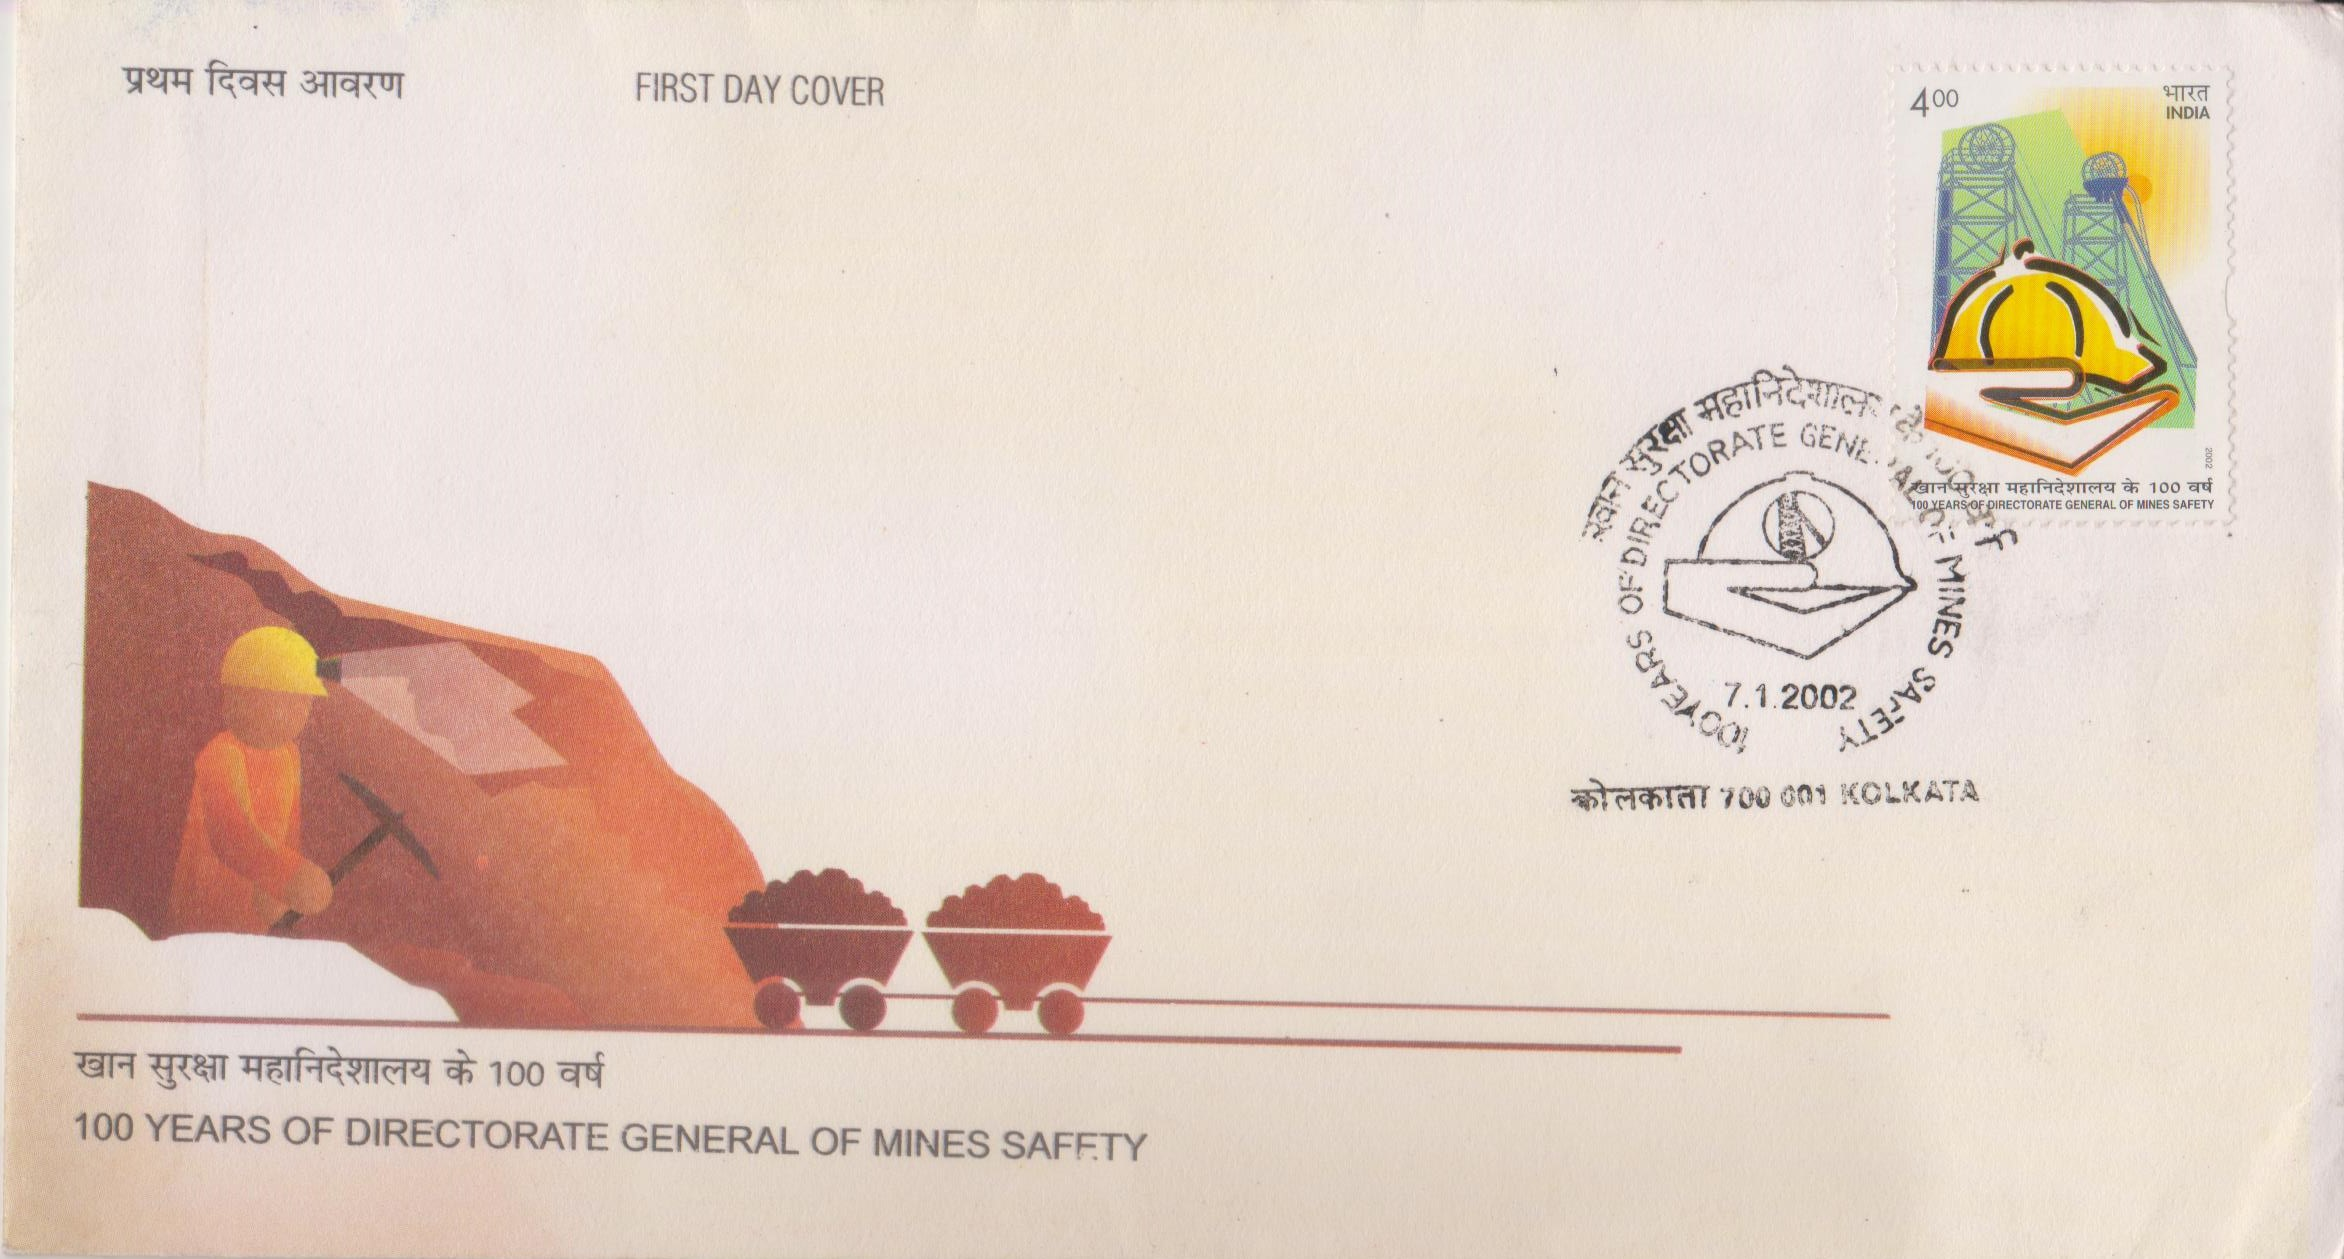 DGMS, First Day Cover image, jpeg, Union Ministry of Labour & Employment